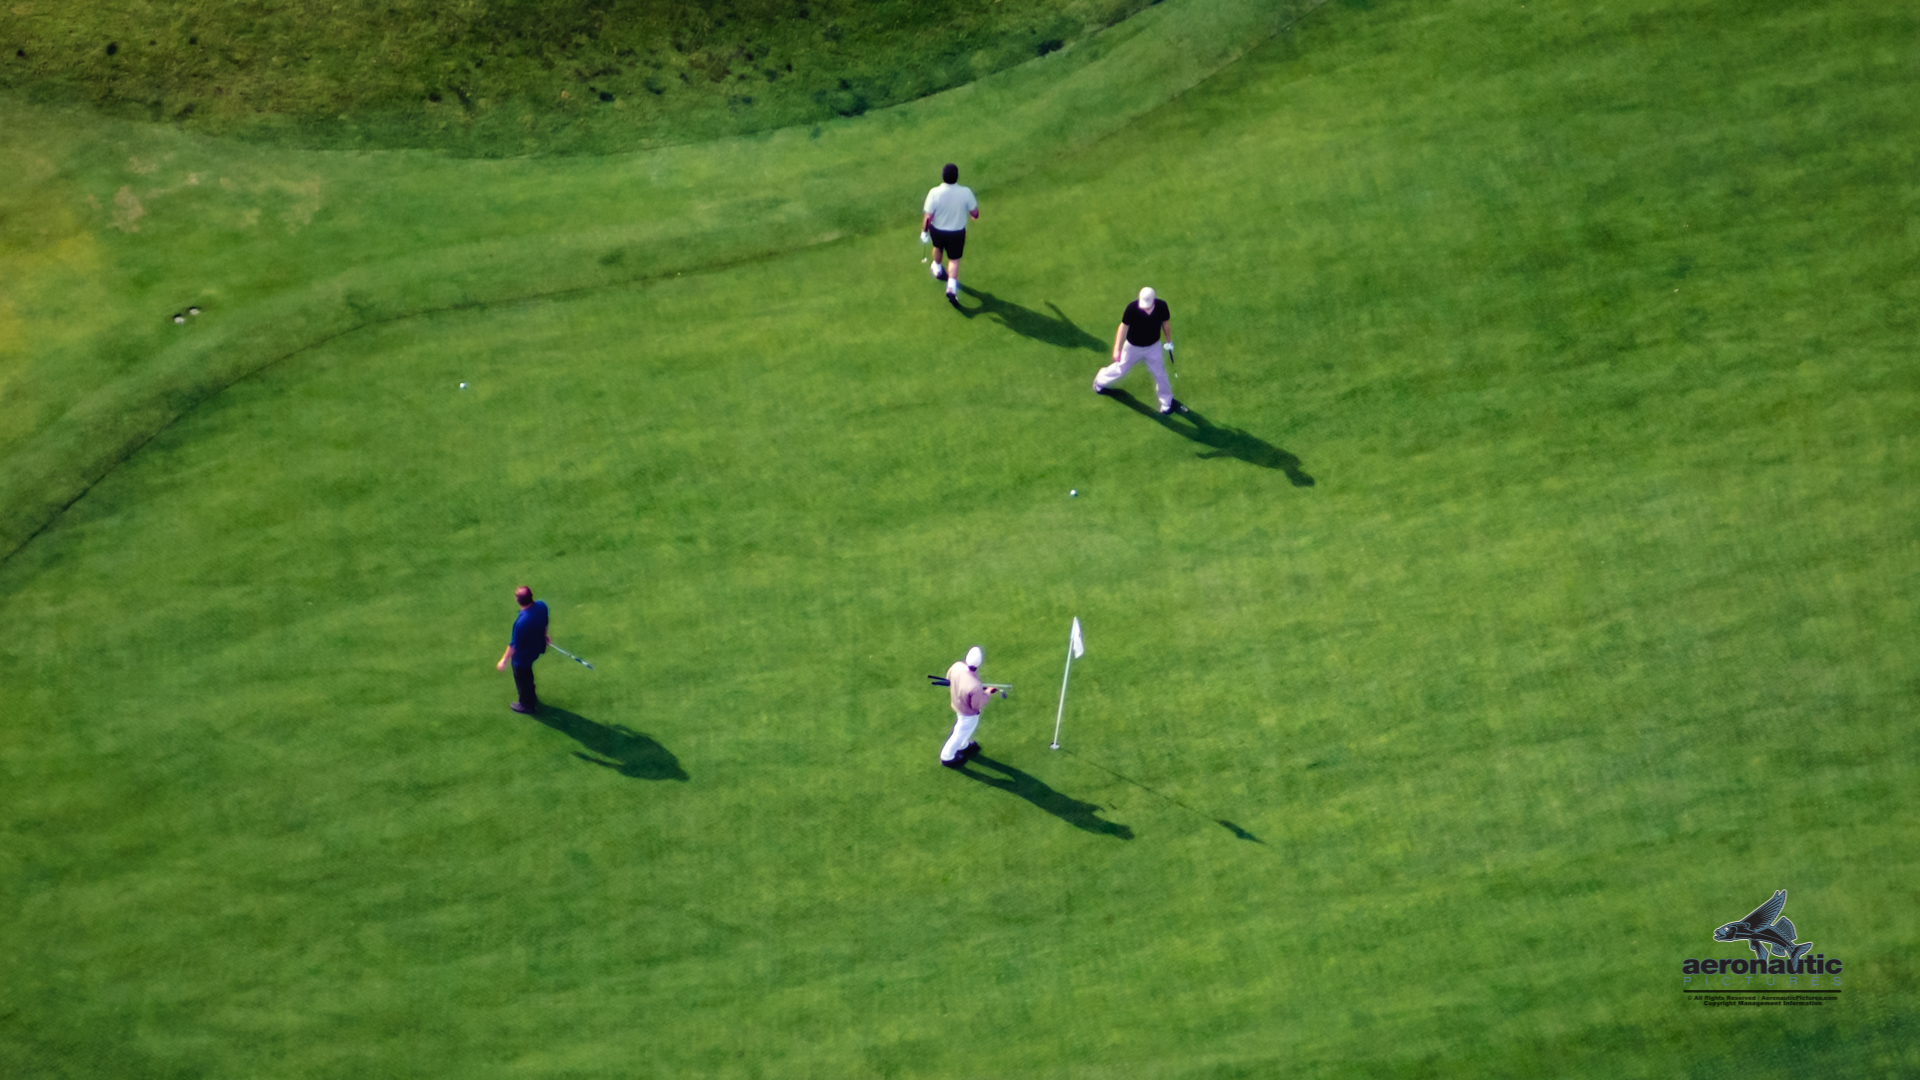 Golfers On Green Golfing Aerial View